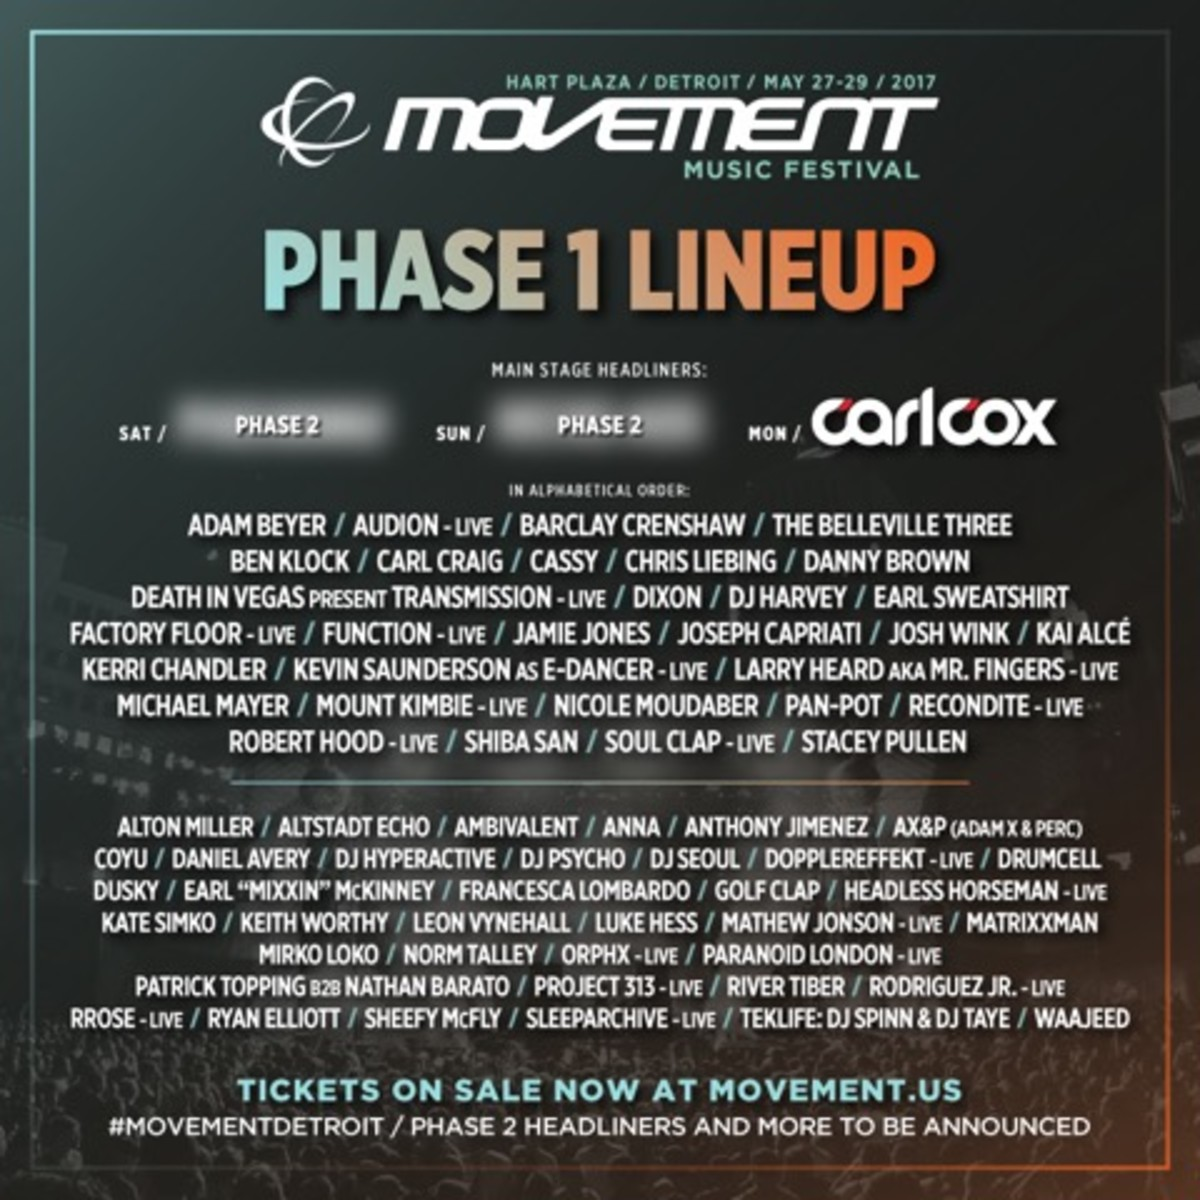 Movement_2017_Phase_1_Lineup.jpeg